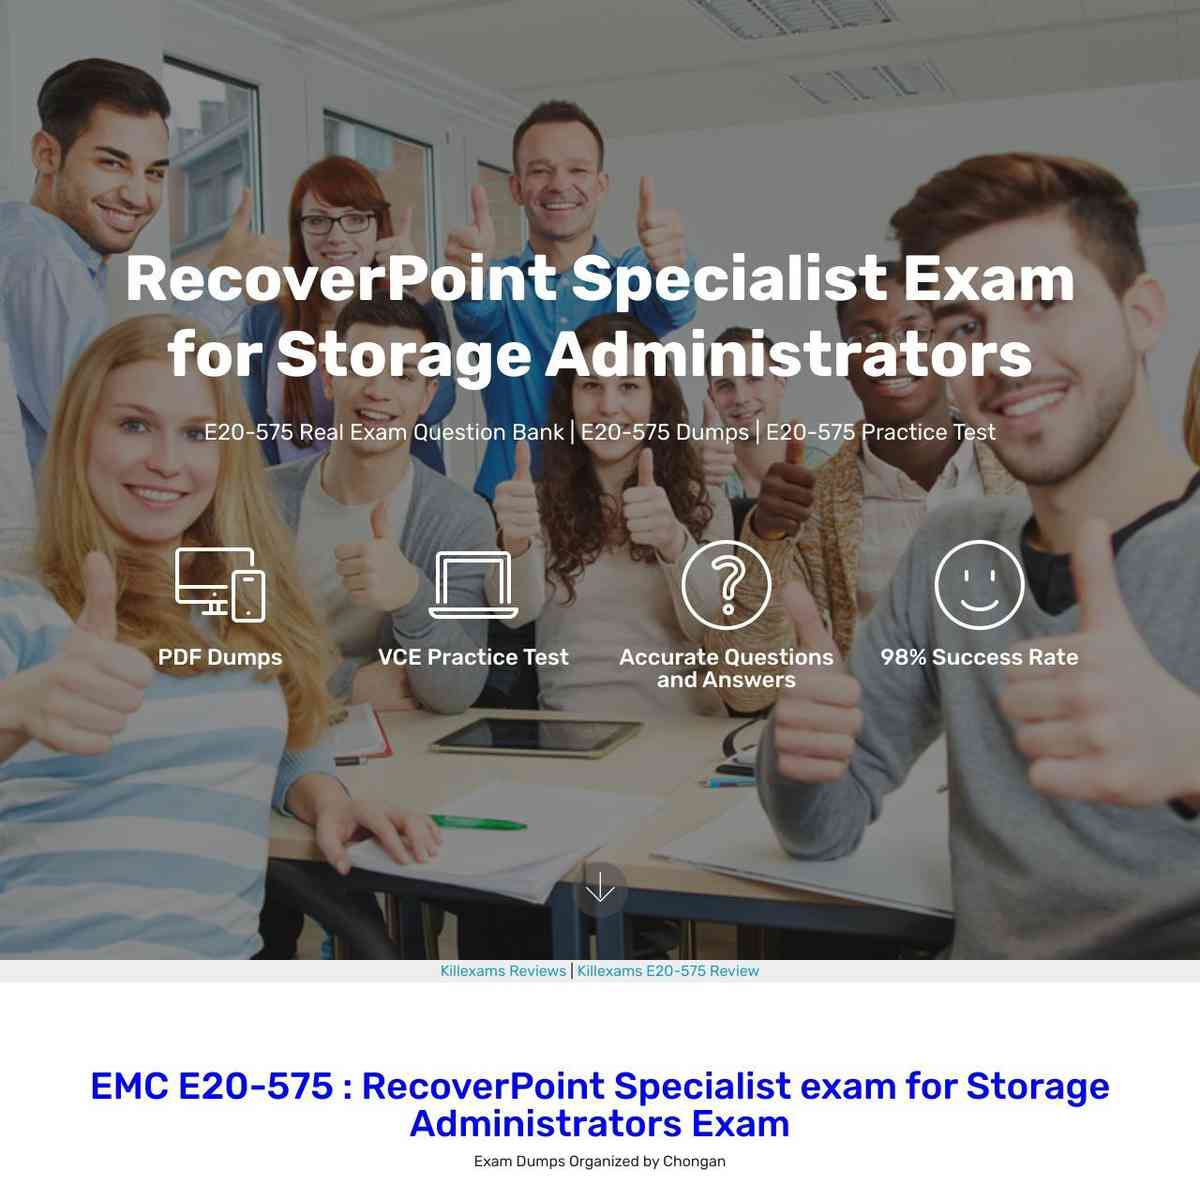 Go through EMC E20-575 Question Bank and Practice Questions with Study Guide